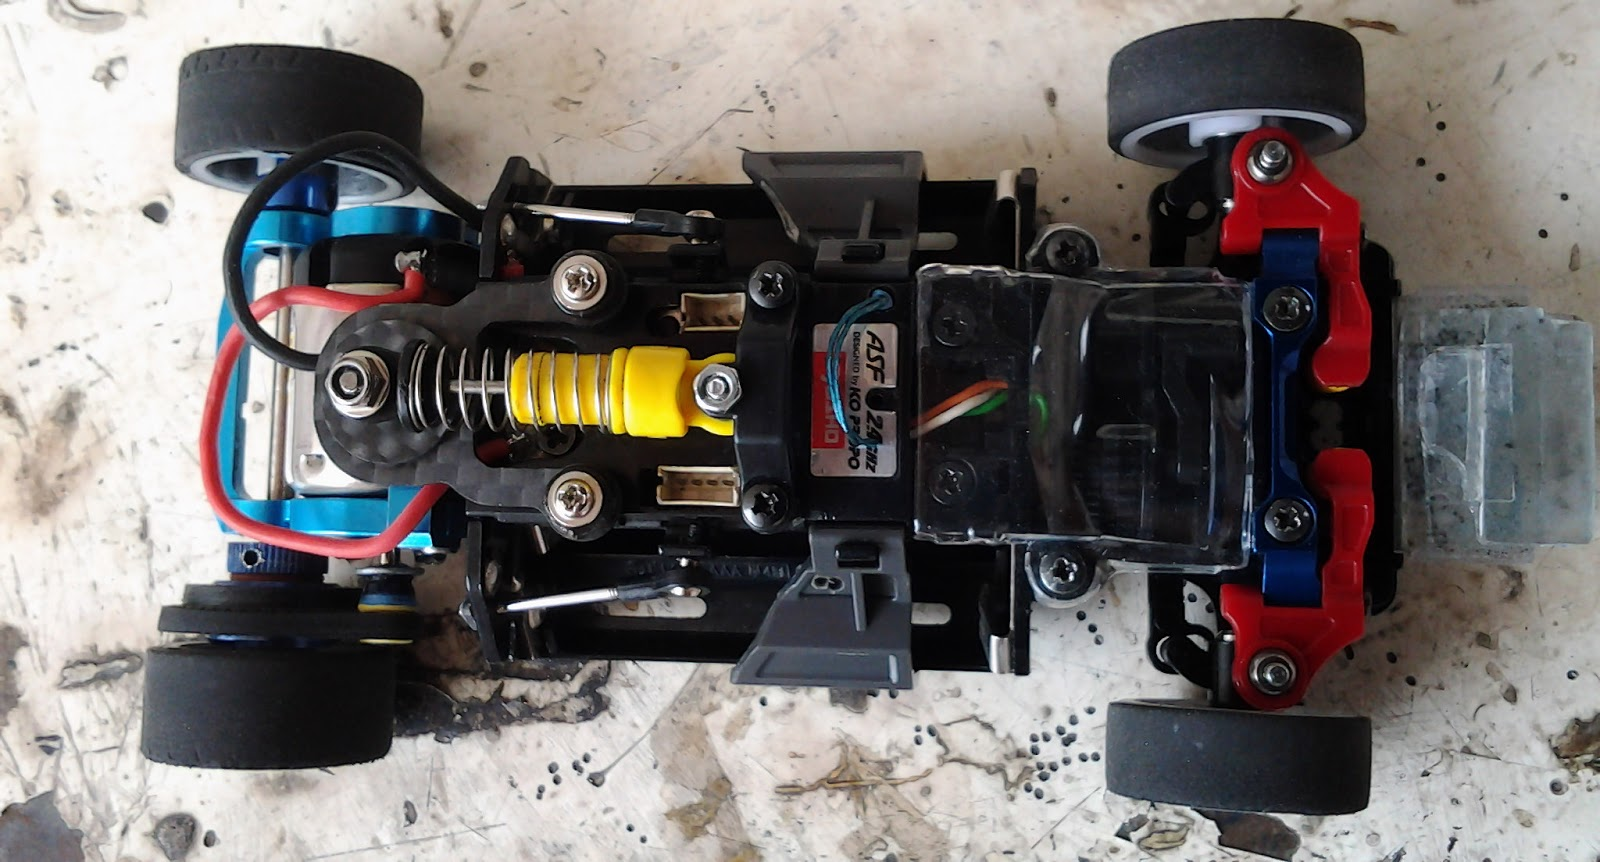 rc helicopter shop with Mini Z Mr 03 Belt Driven Mod on Q80 5l Brushless Motor likewise Nerf Zombie Strike Doominator Blaster besides JetCat P80SE  pleteSet additionally Mini Z Mr 03 Belt Driven Mod additionally 301624446005.